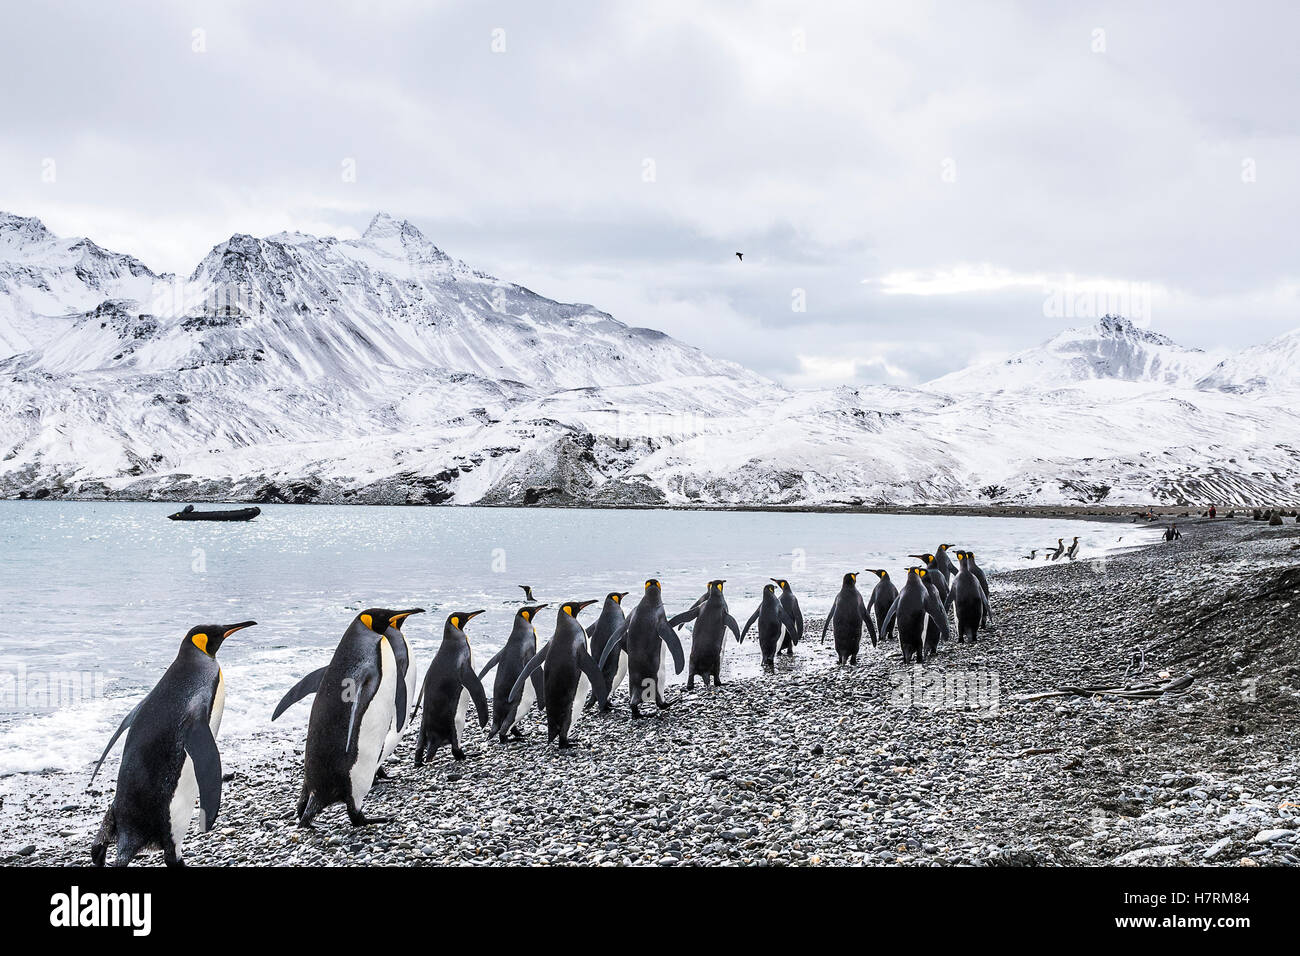 King penguins (Aptenodytes patagonicus) walking in a row along the water's edge and a zodiac moored in the water - Stock Image